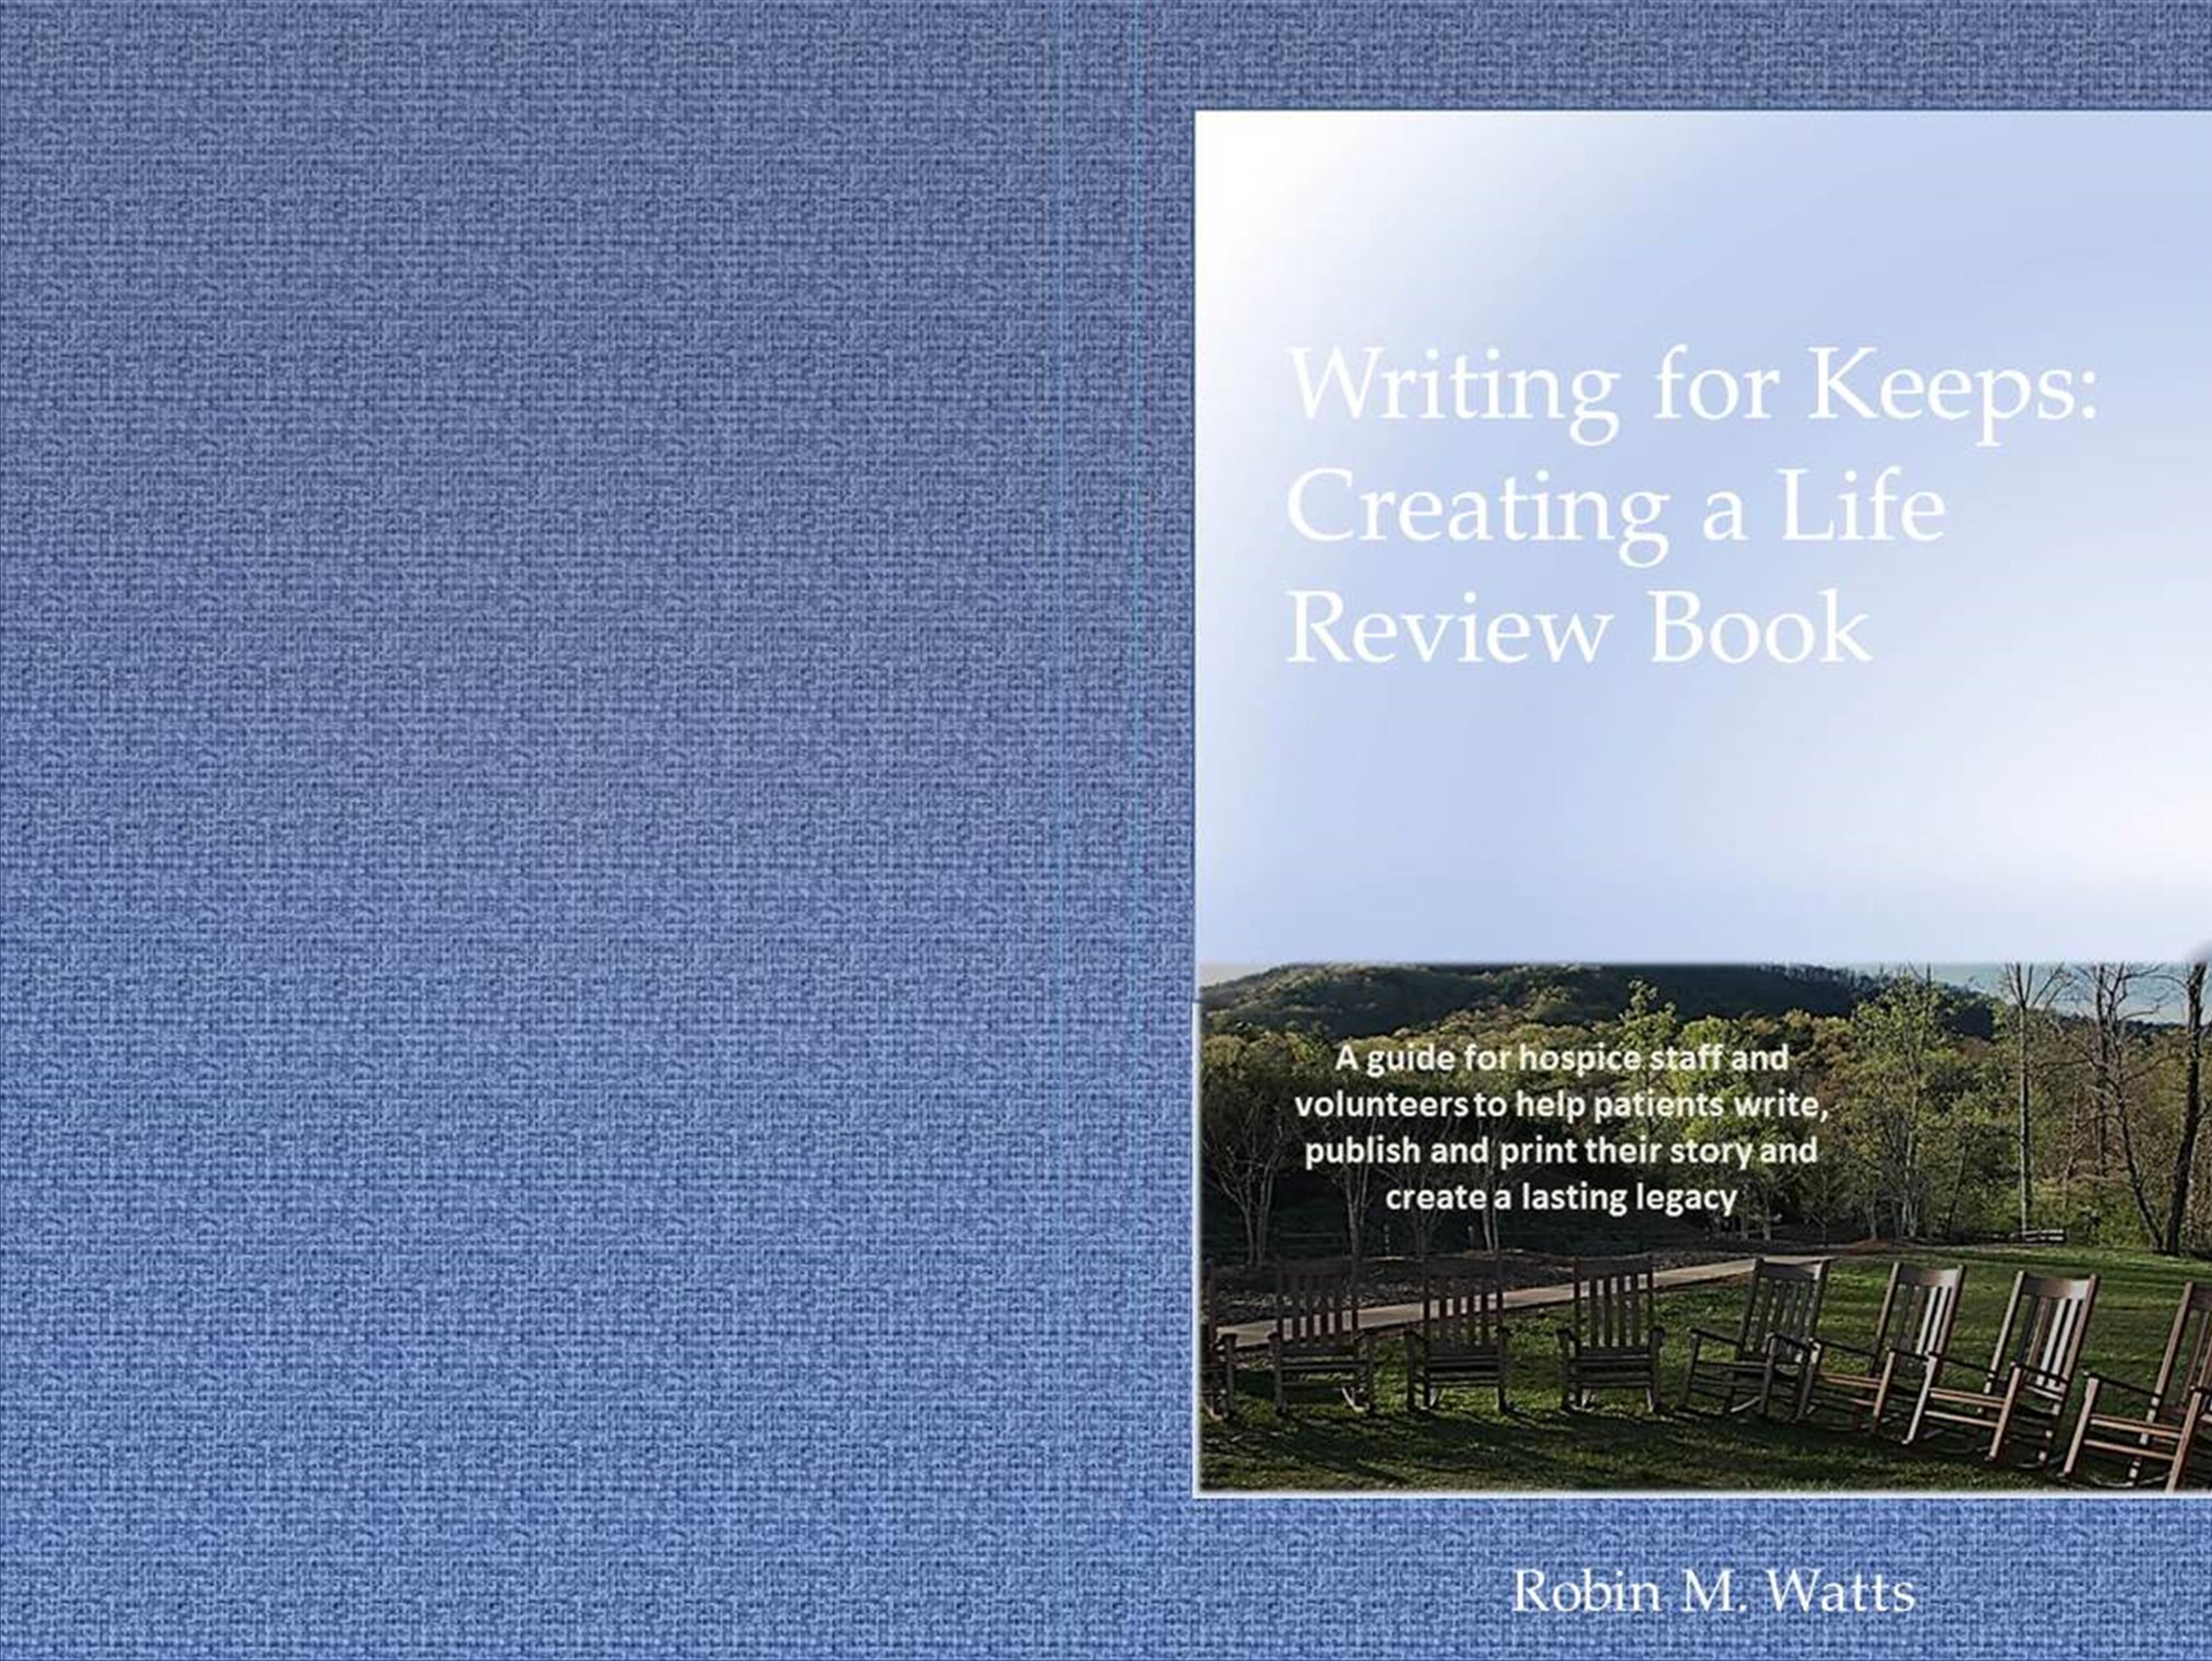 Writing for Keeps: Creating a Life Review Book cover image